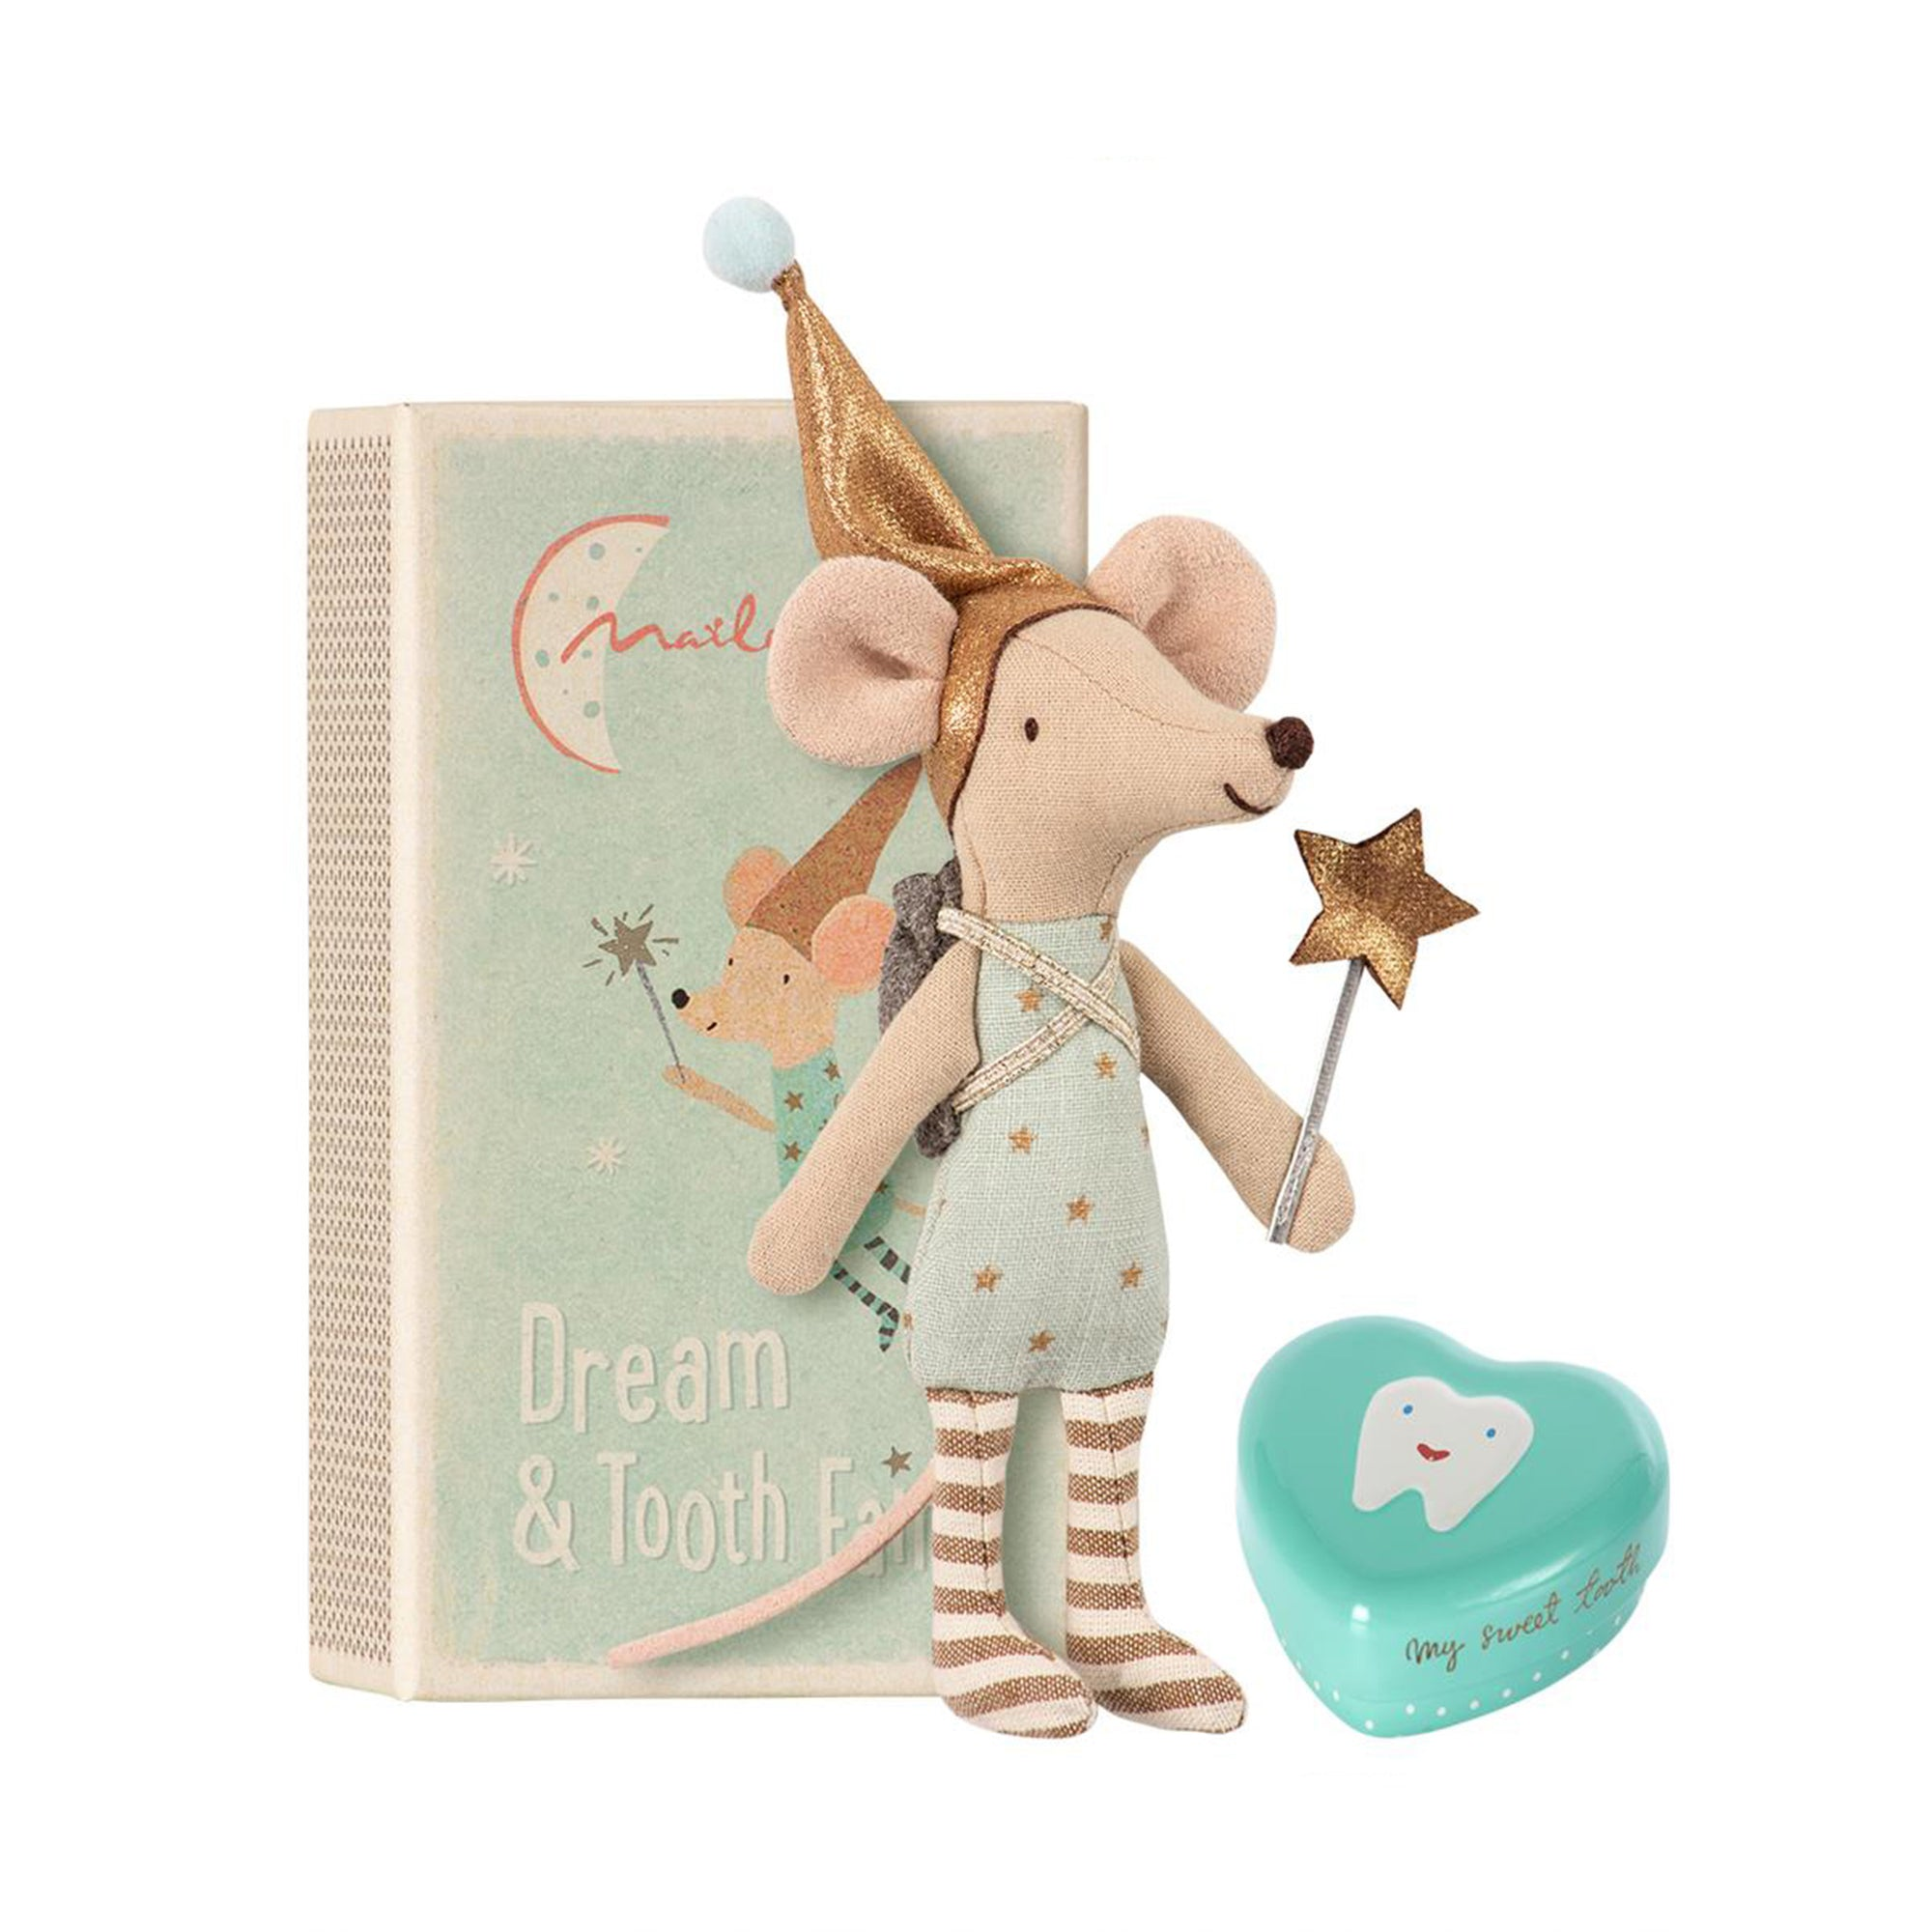 Maileg Tooth Fairy Big Brother Mouse with Metal Box - Scandi Minimal